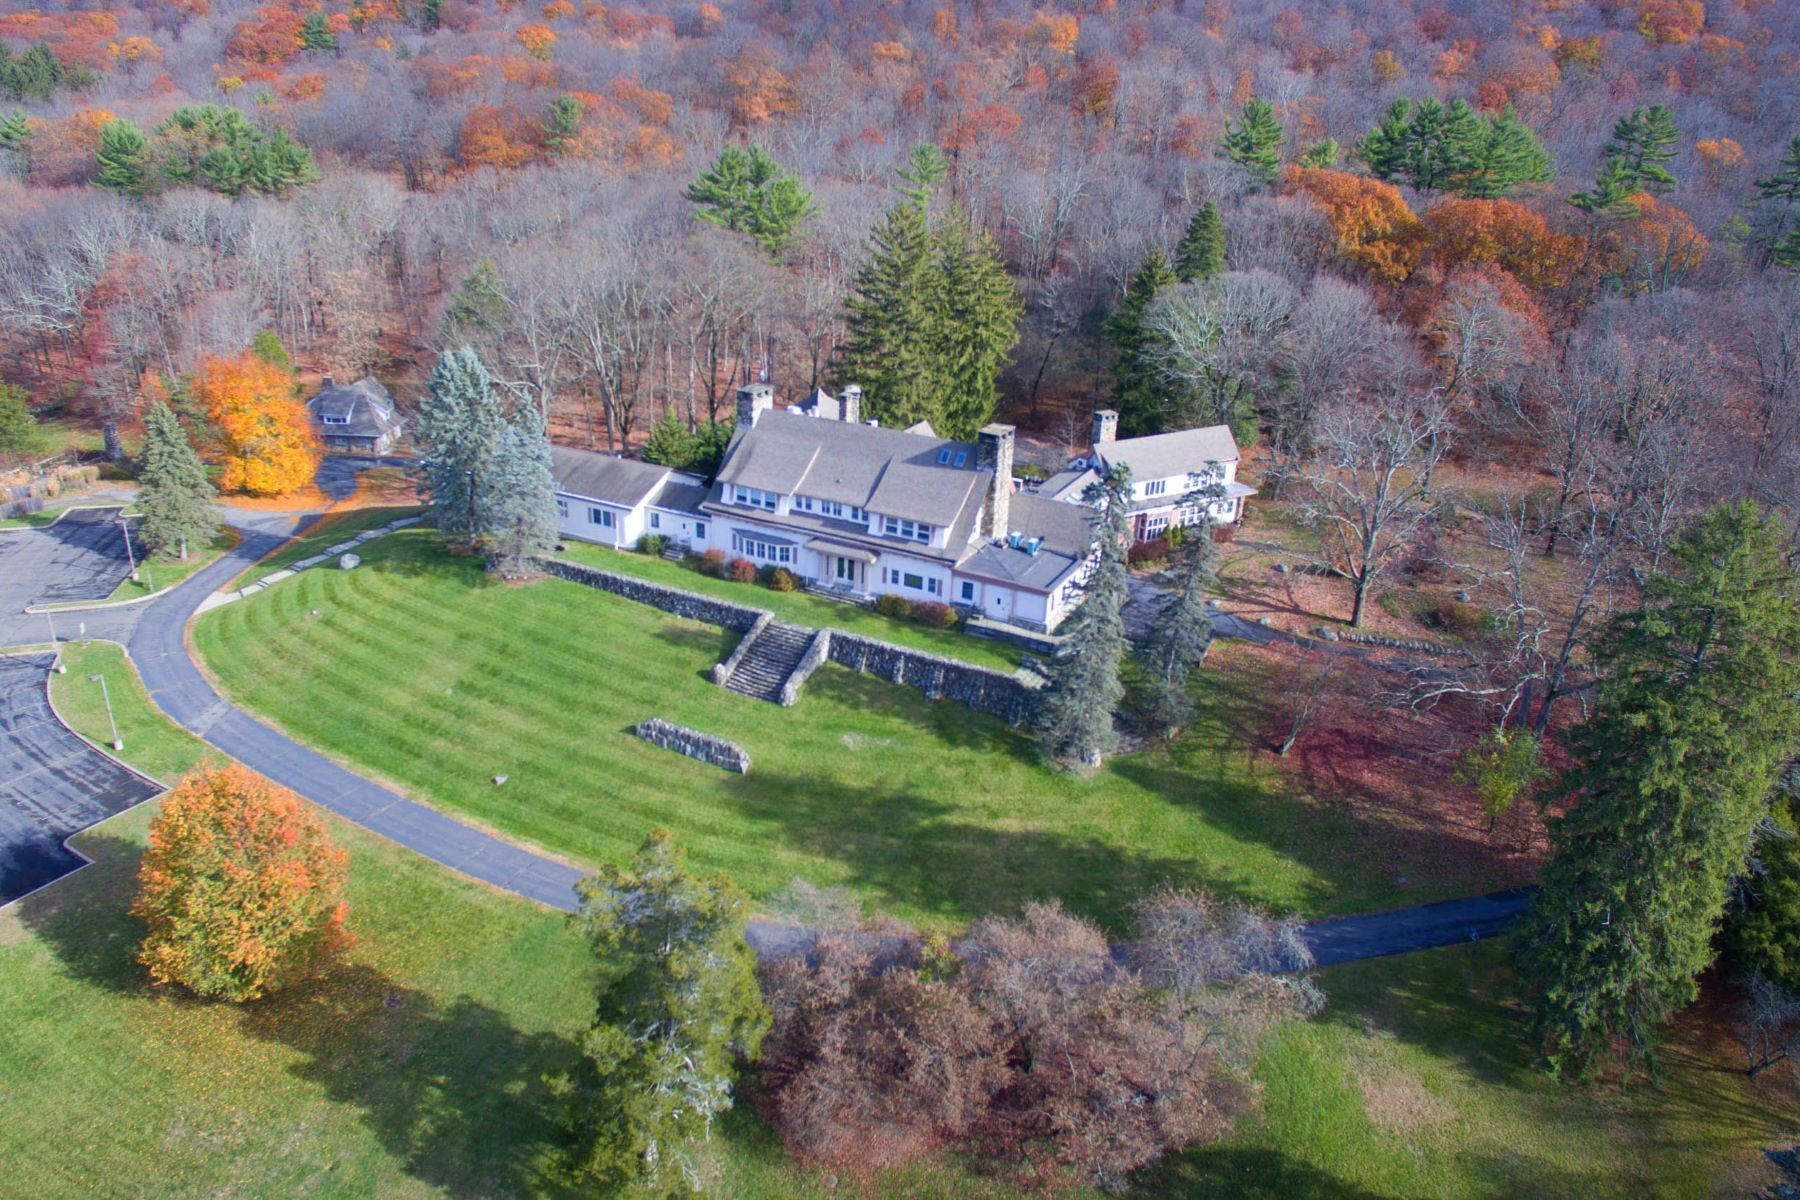 Maison unifamiliale pour l Vente à Spectacular Thirty Four Acre Retreat 1071 Ramapo Valley Road, Mahwah, New Jersey 07430 États-Unis